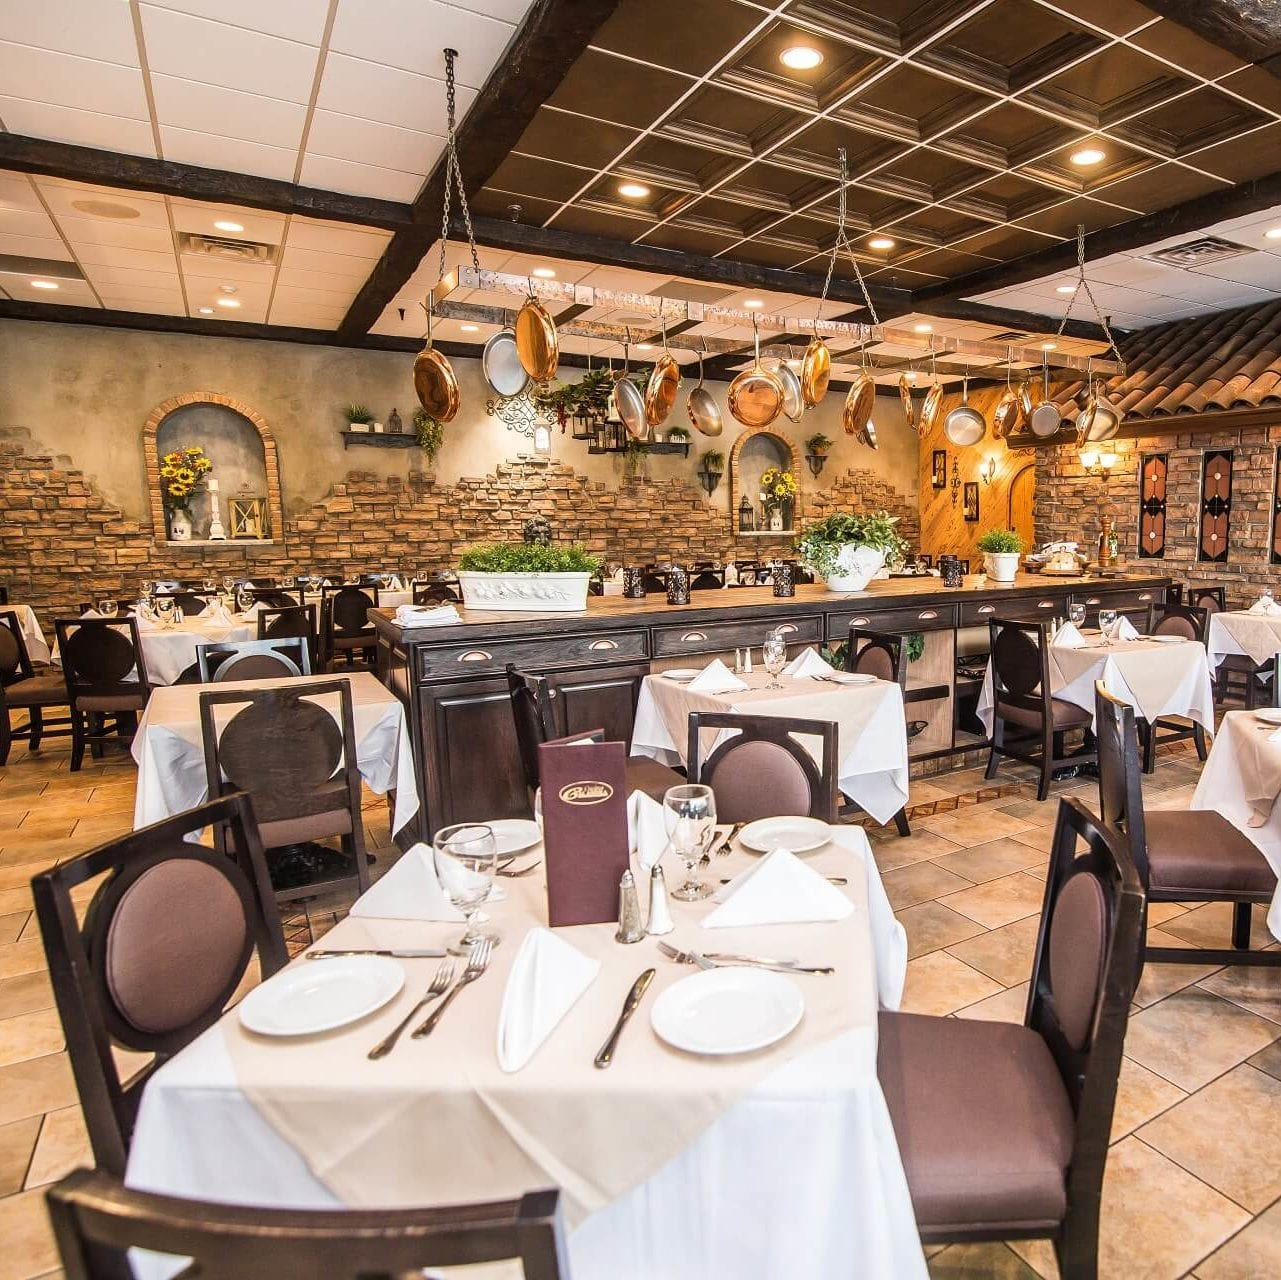 Cucina Calandra Restaurant Open on Thanksgiving